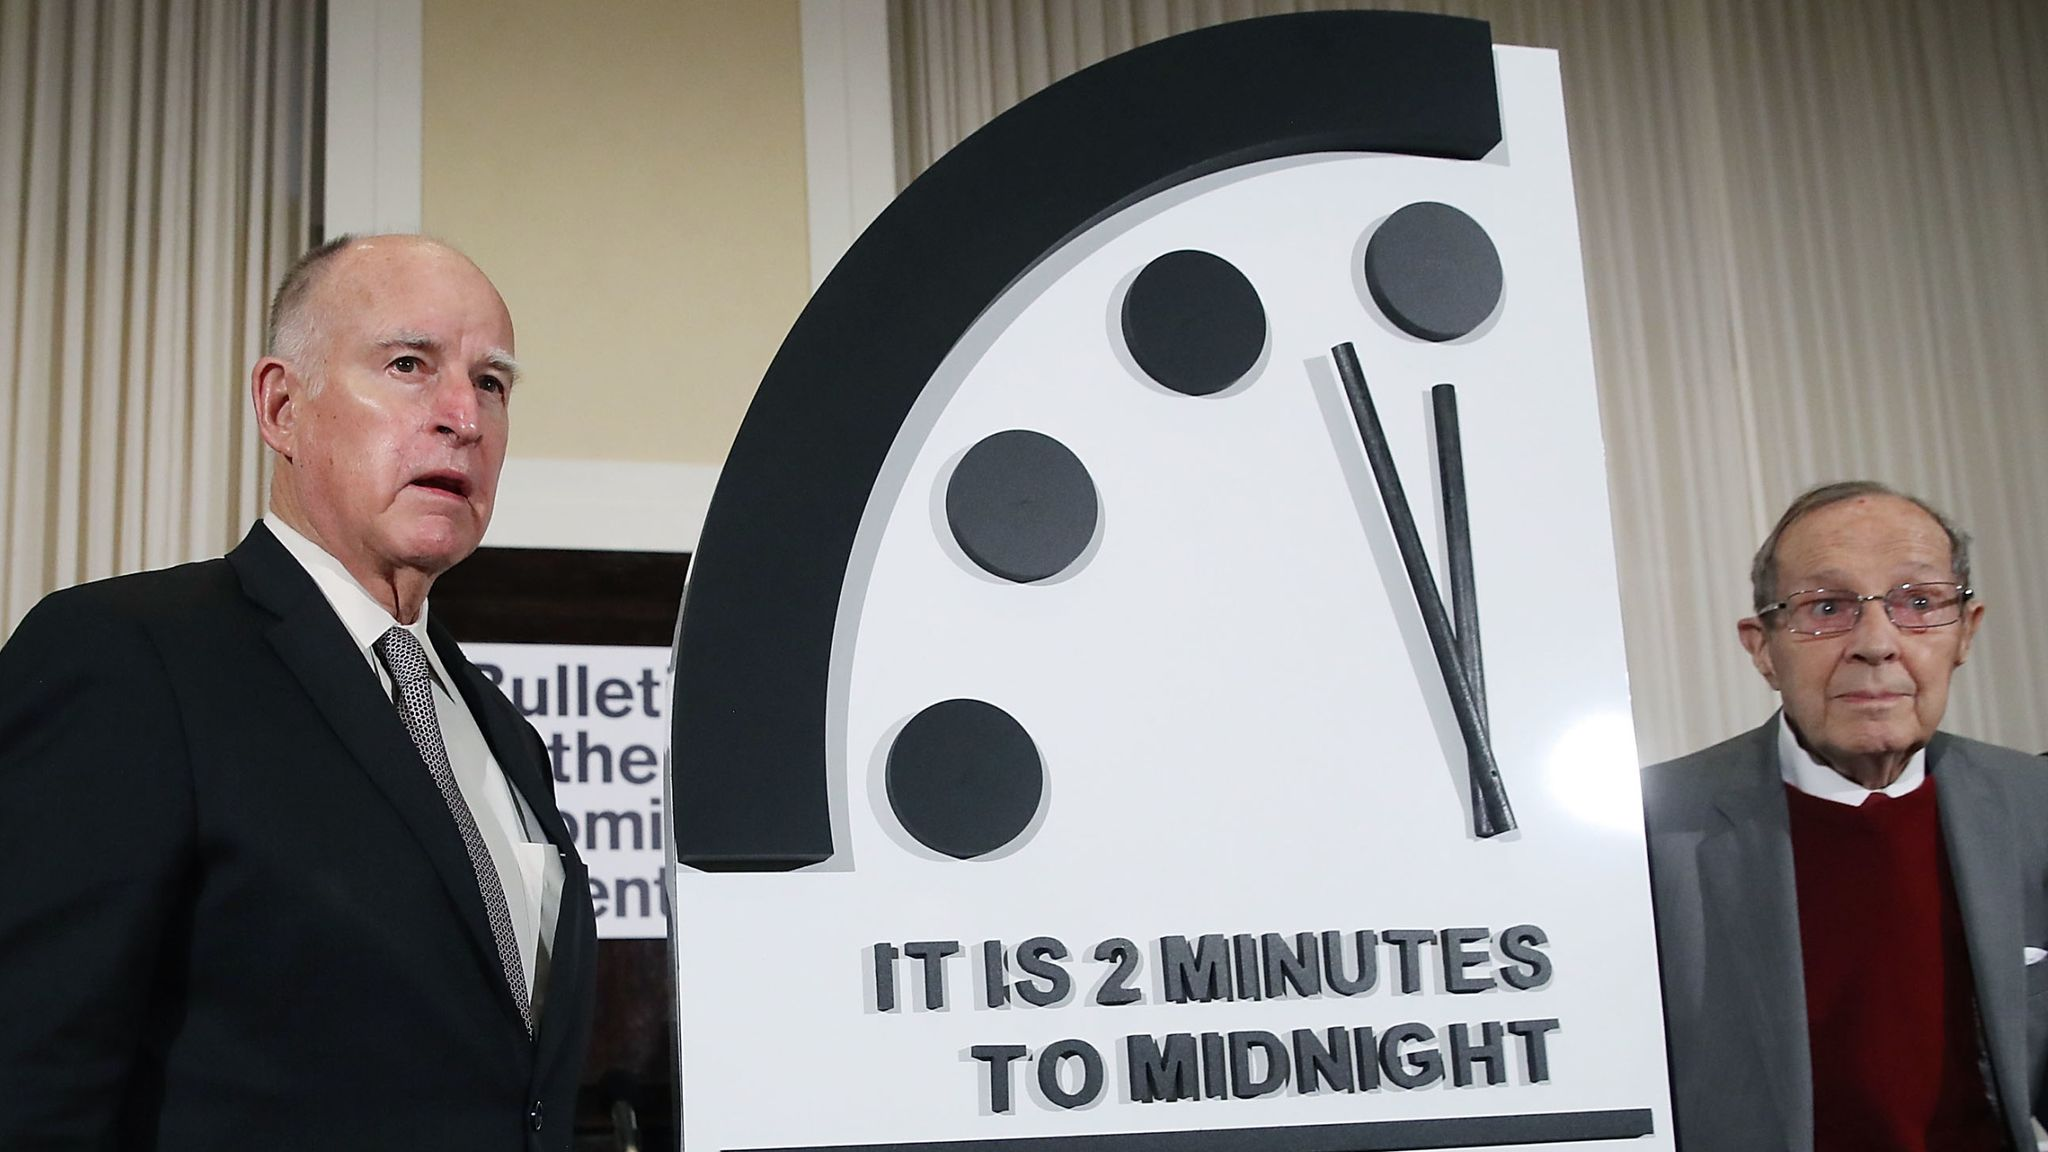 Doomsday clock hits 100 seconds to midnight - closest to catastrophe ever